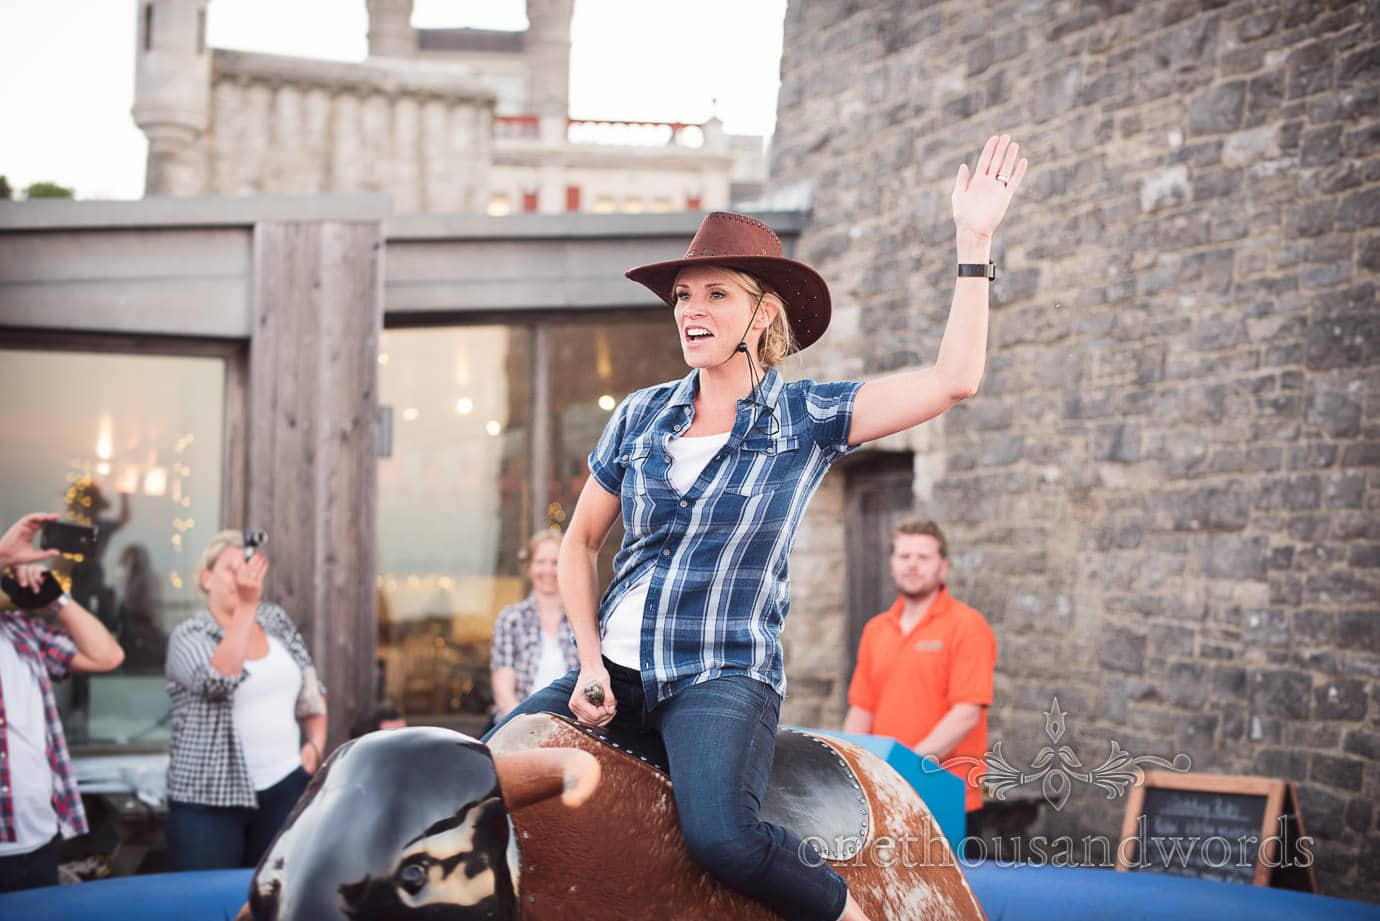 Swanage Wedding Photographers capture cowgirl riding bucking bronco at castle wedding